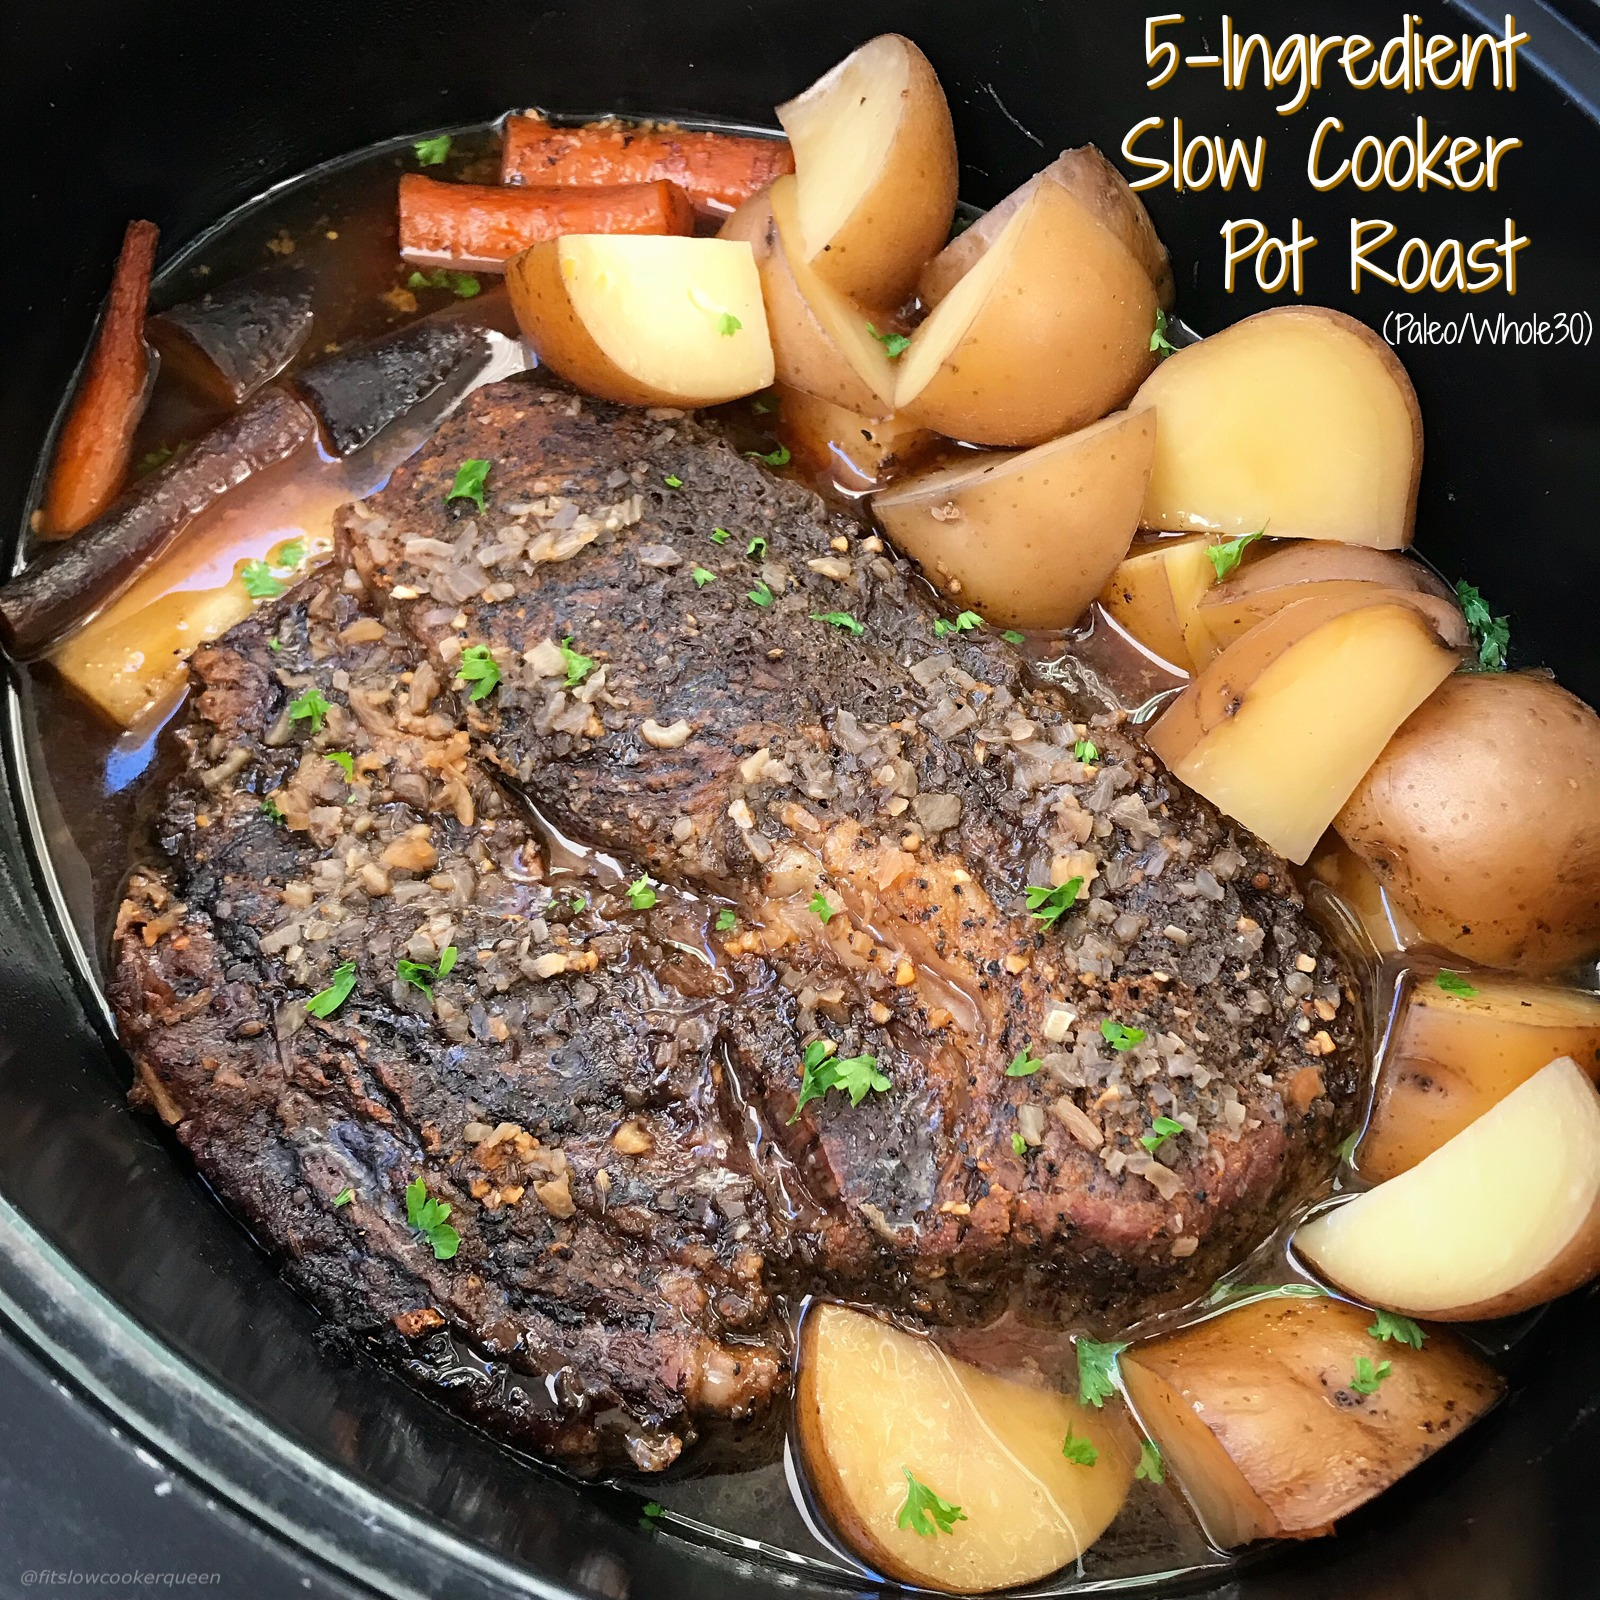 Five Easy Healthy Flavorful Indian Recipes: 5-Ingredient Slow Cooker Pot Roast (Paleo/Whole30)